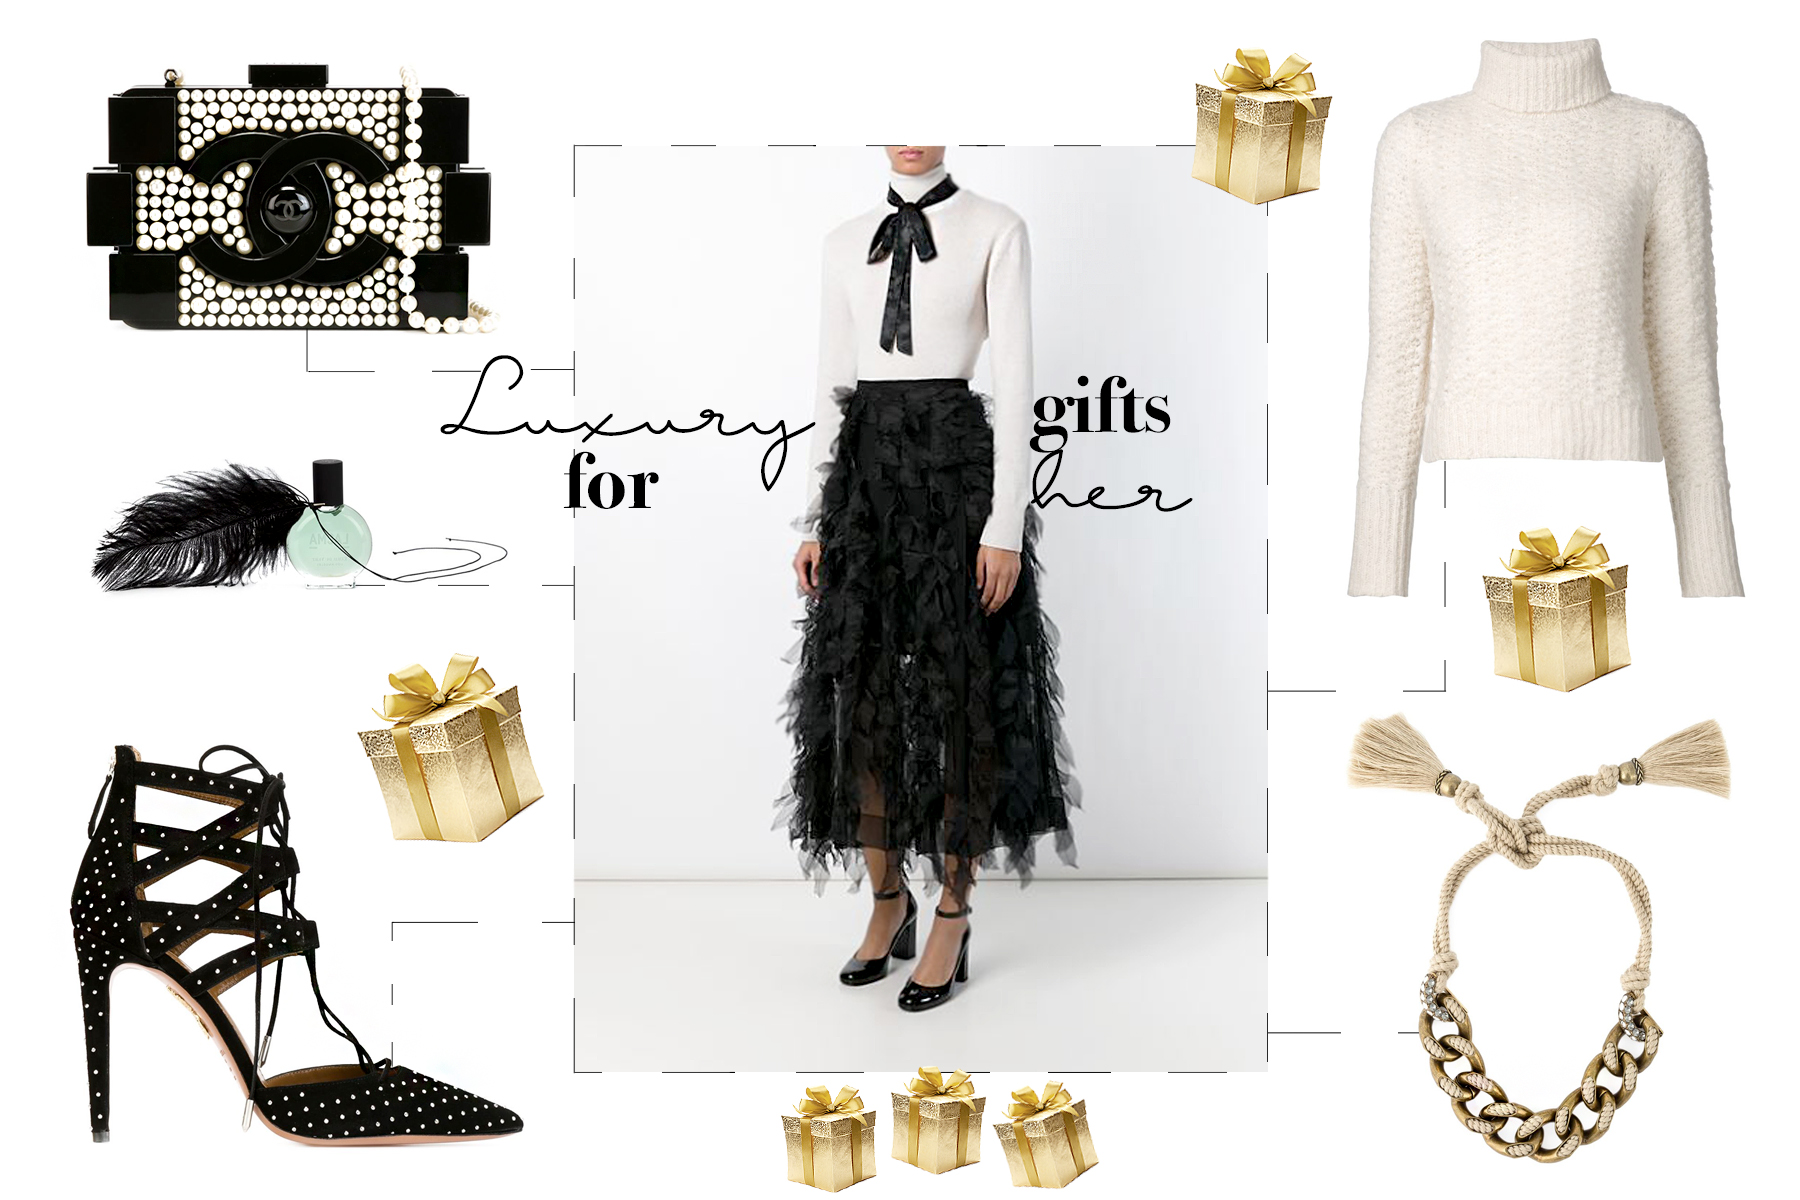 farfetch ricarda curates the holidays my luxury wishlist for christmas ladies girls aquazzura chanel lanvin rochas festive season outfit gift guide cats & dogs fashionblog modeblog ricarda schernus lifestyle blogger dusseldorf germany